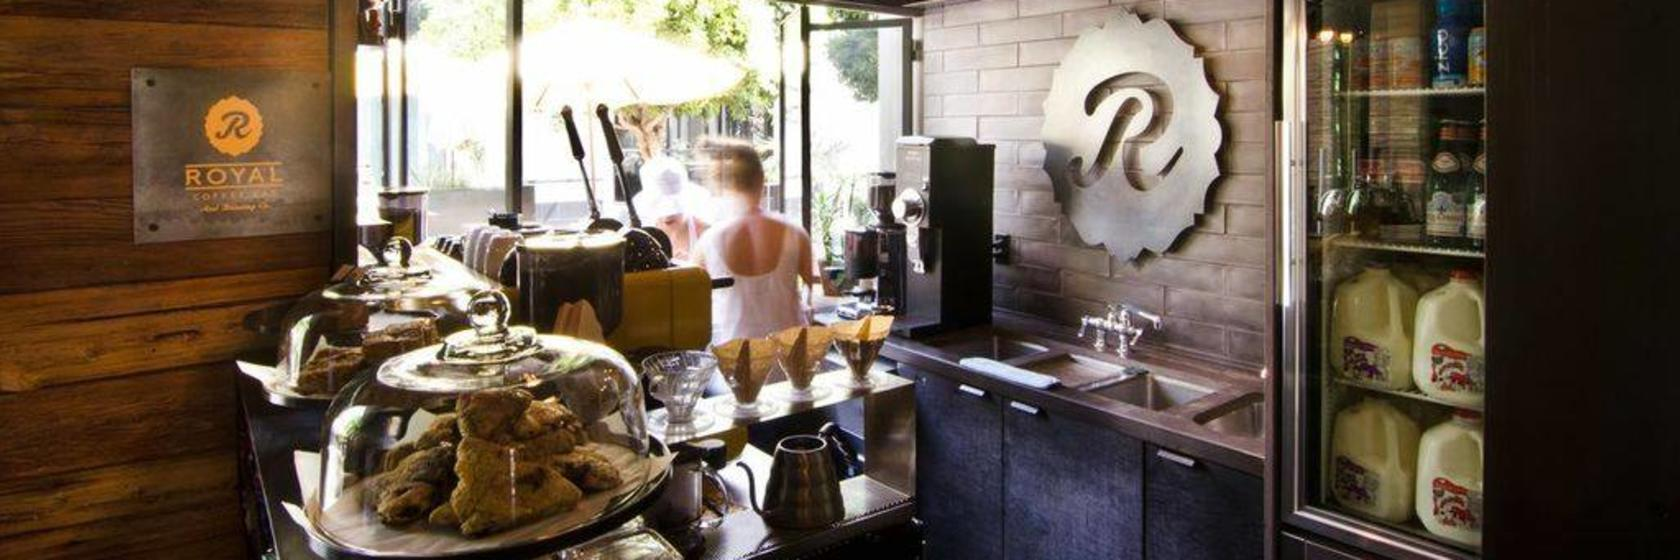 Best Places To Get Coffee In Phoenix